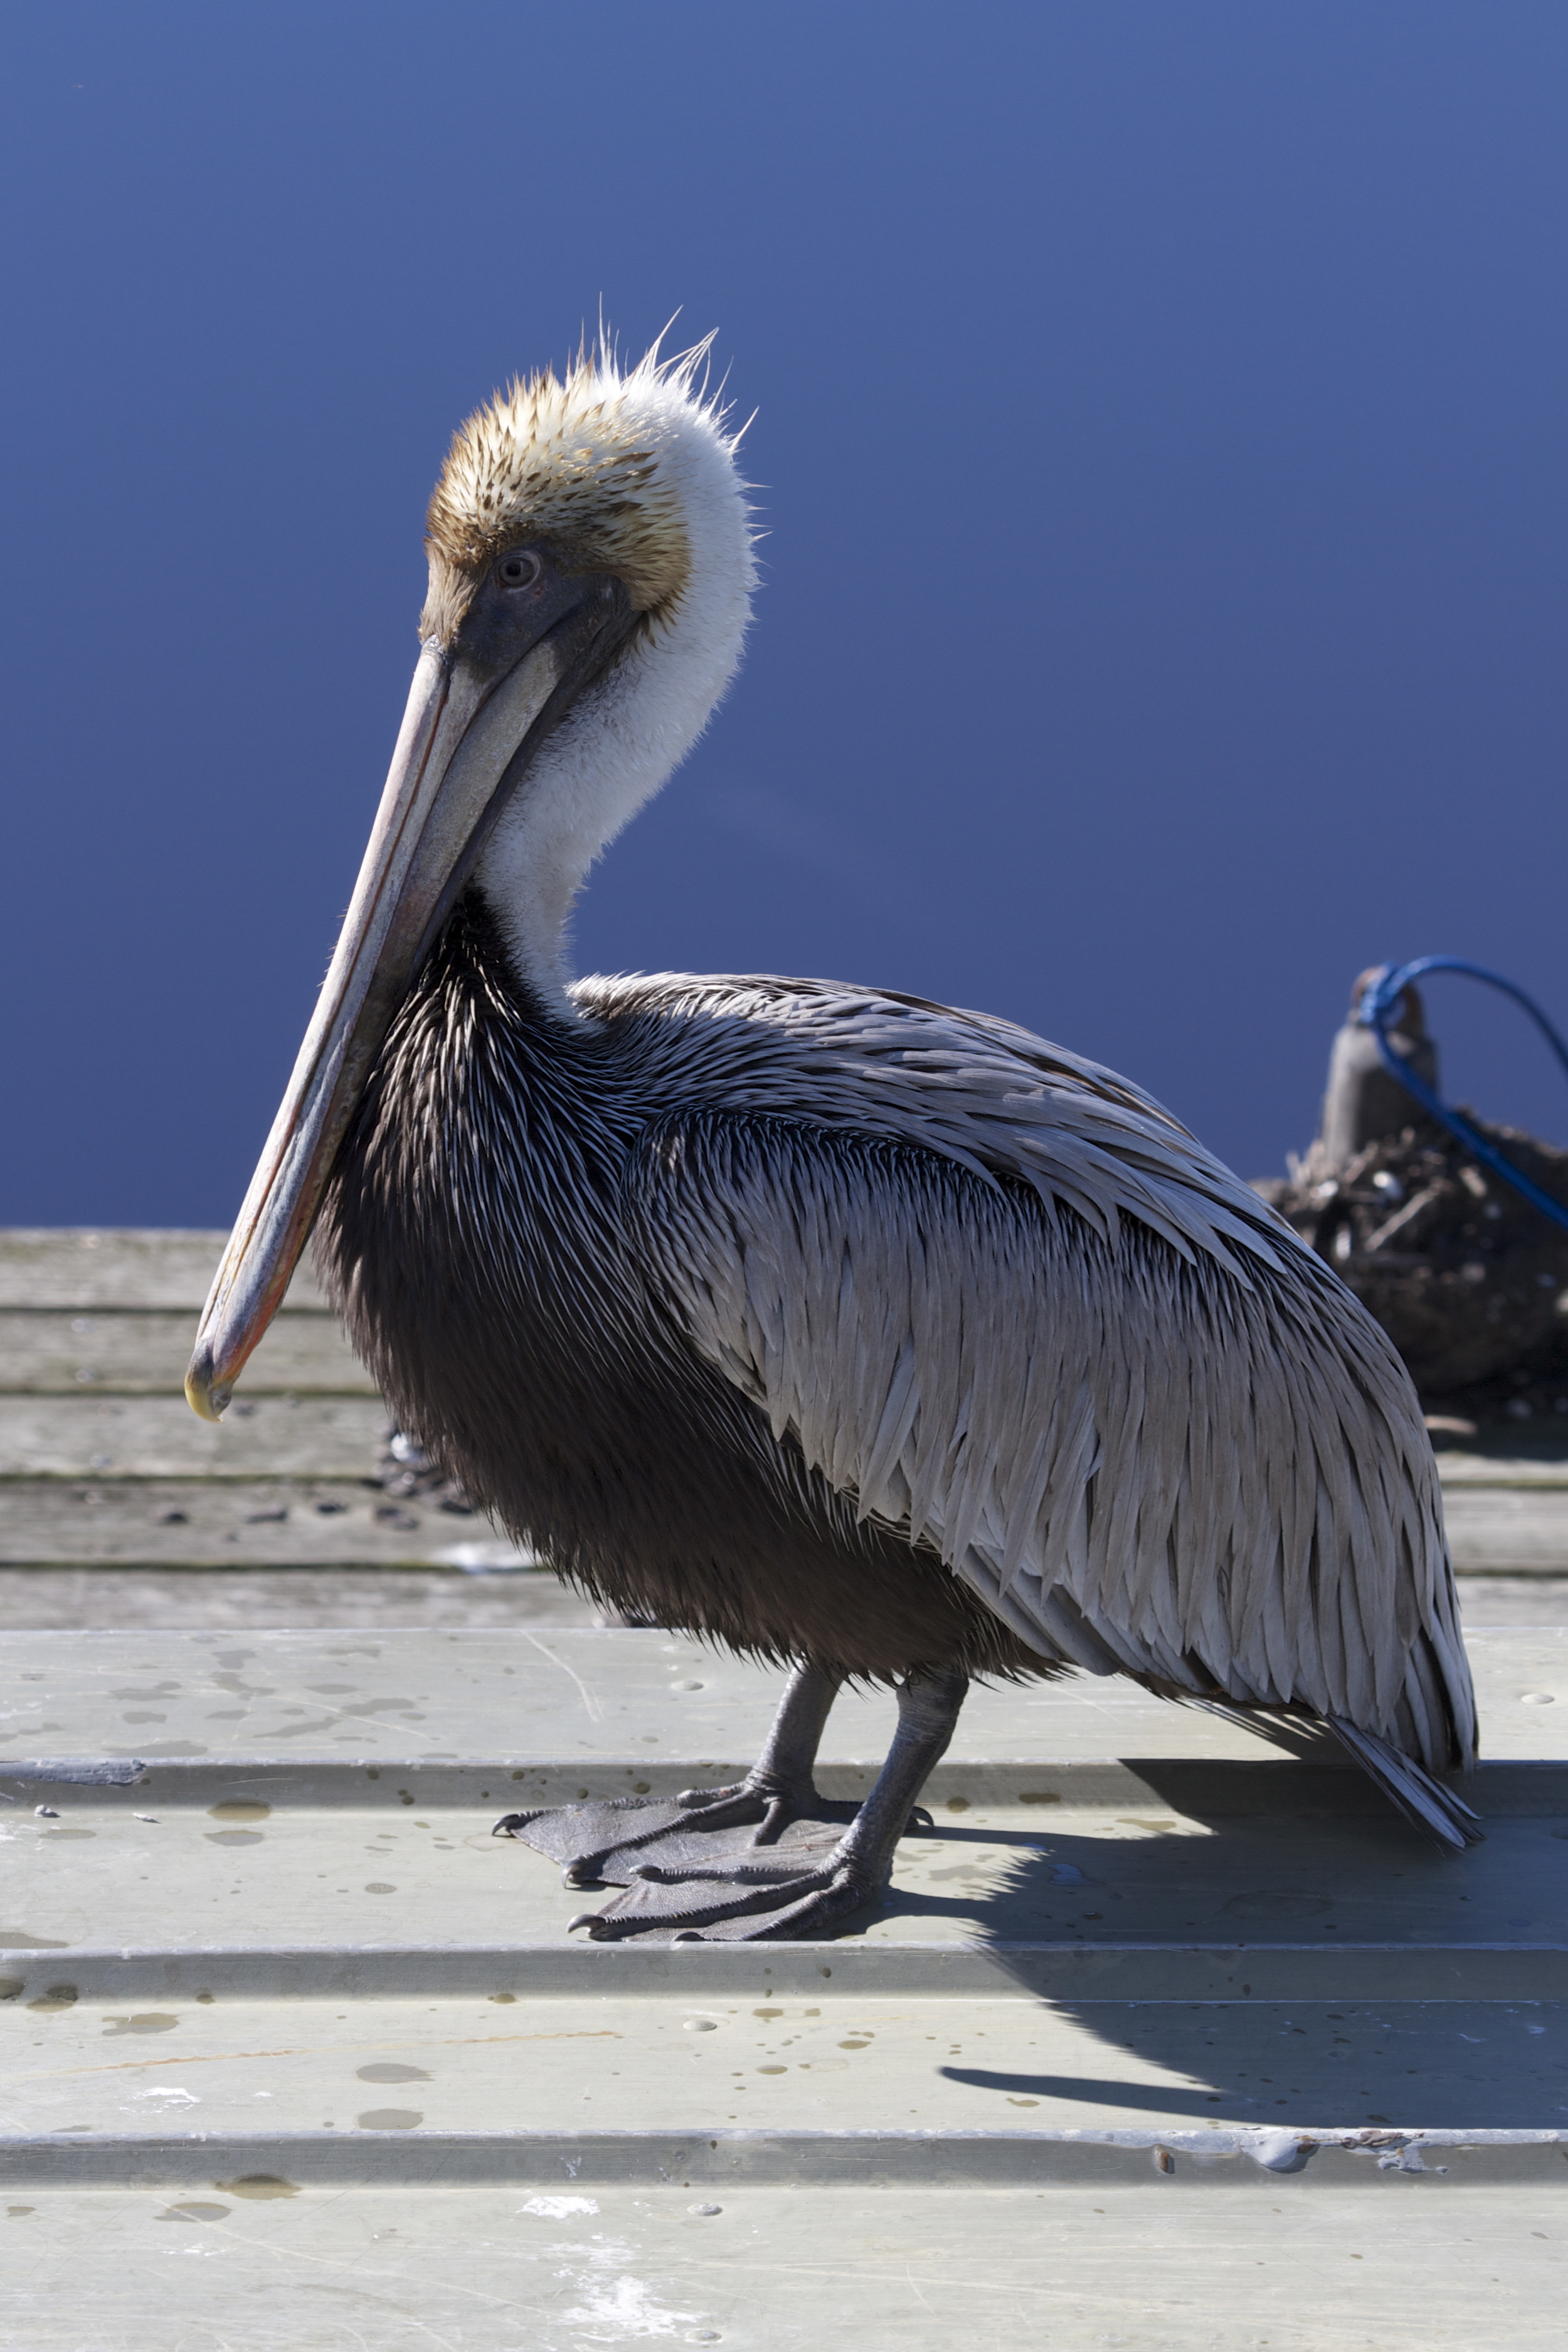 I find the Brown Pelican sitting on the Jon Boat...dejected looking..